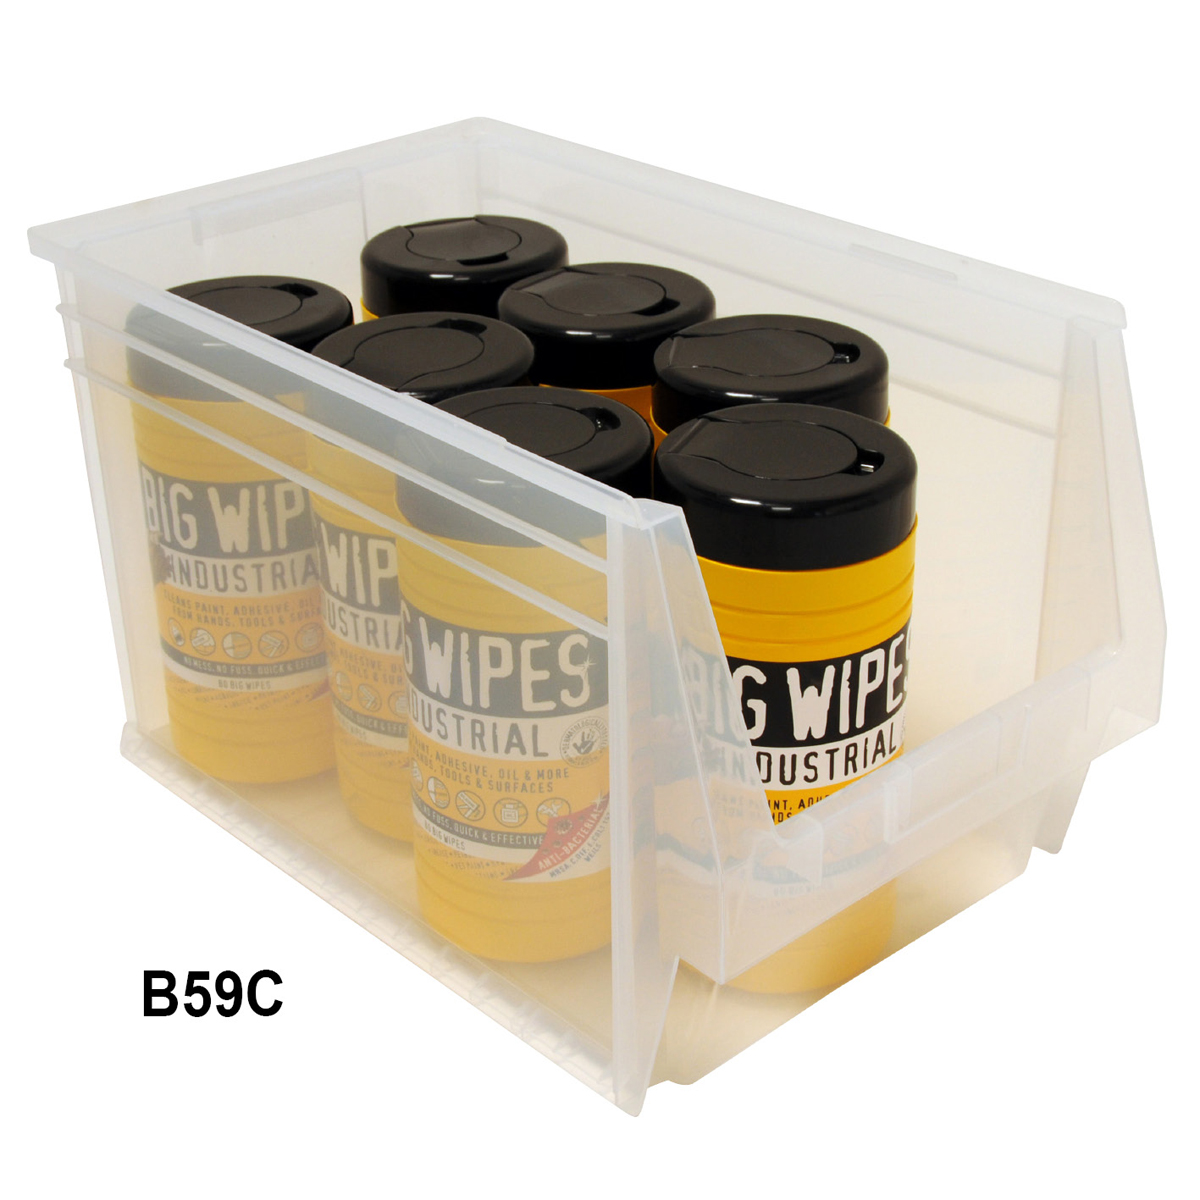 View Item Pack of 6 Premium Clear Bins 300mm High x 303mm Wide x 500mm Deep